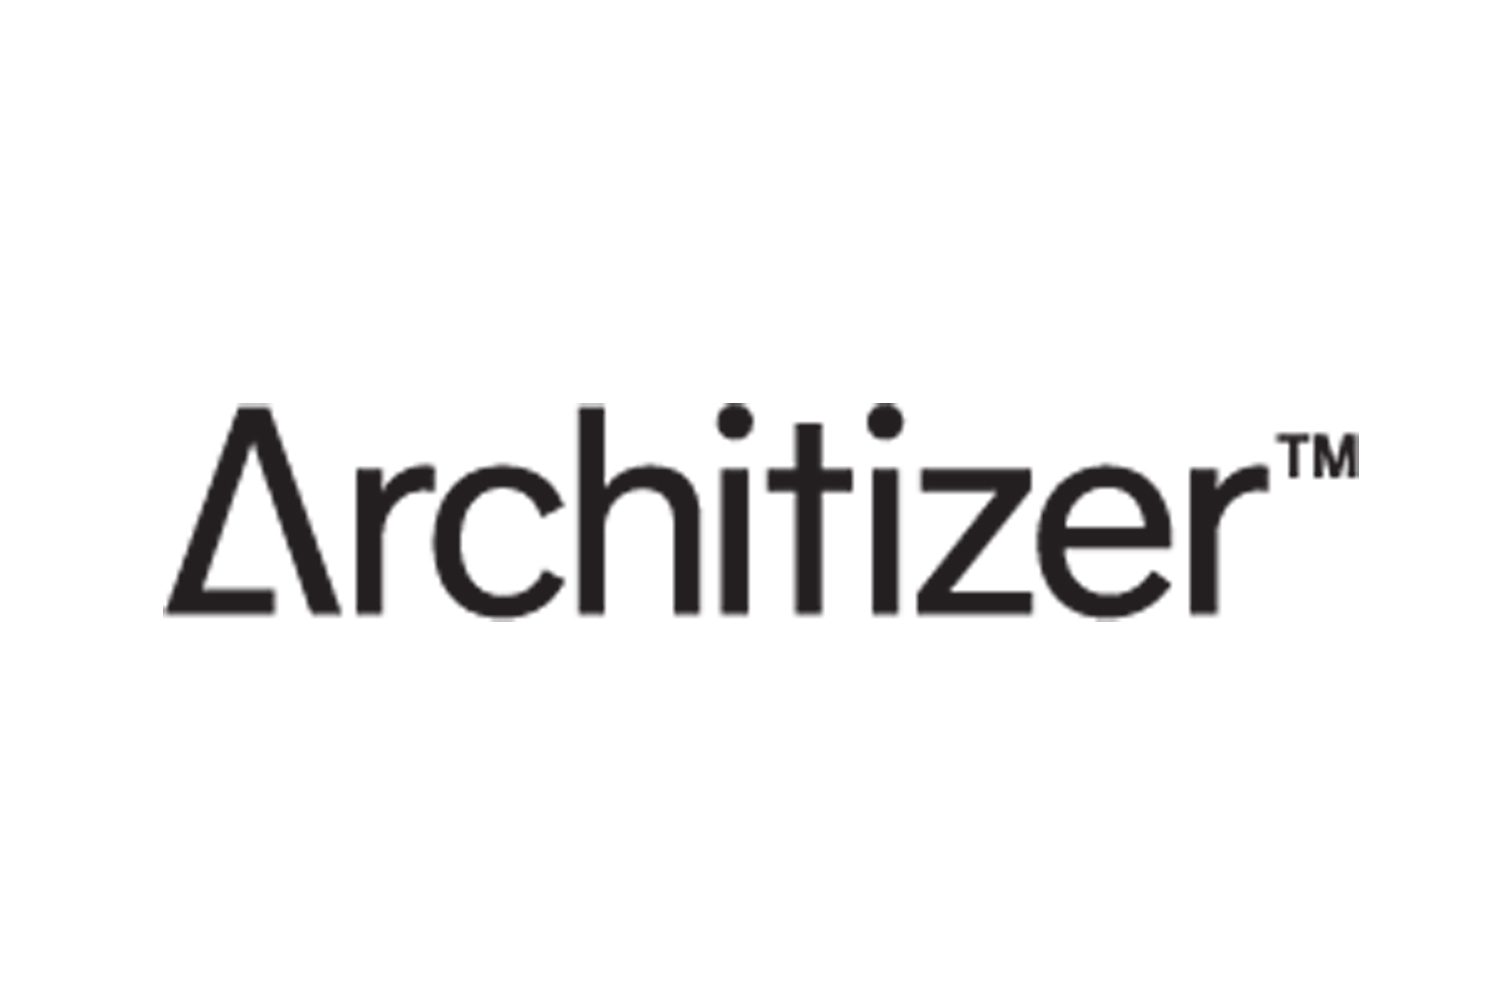 Resource_Architizer.jpg